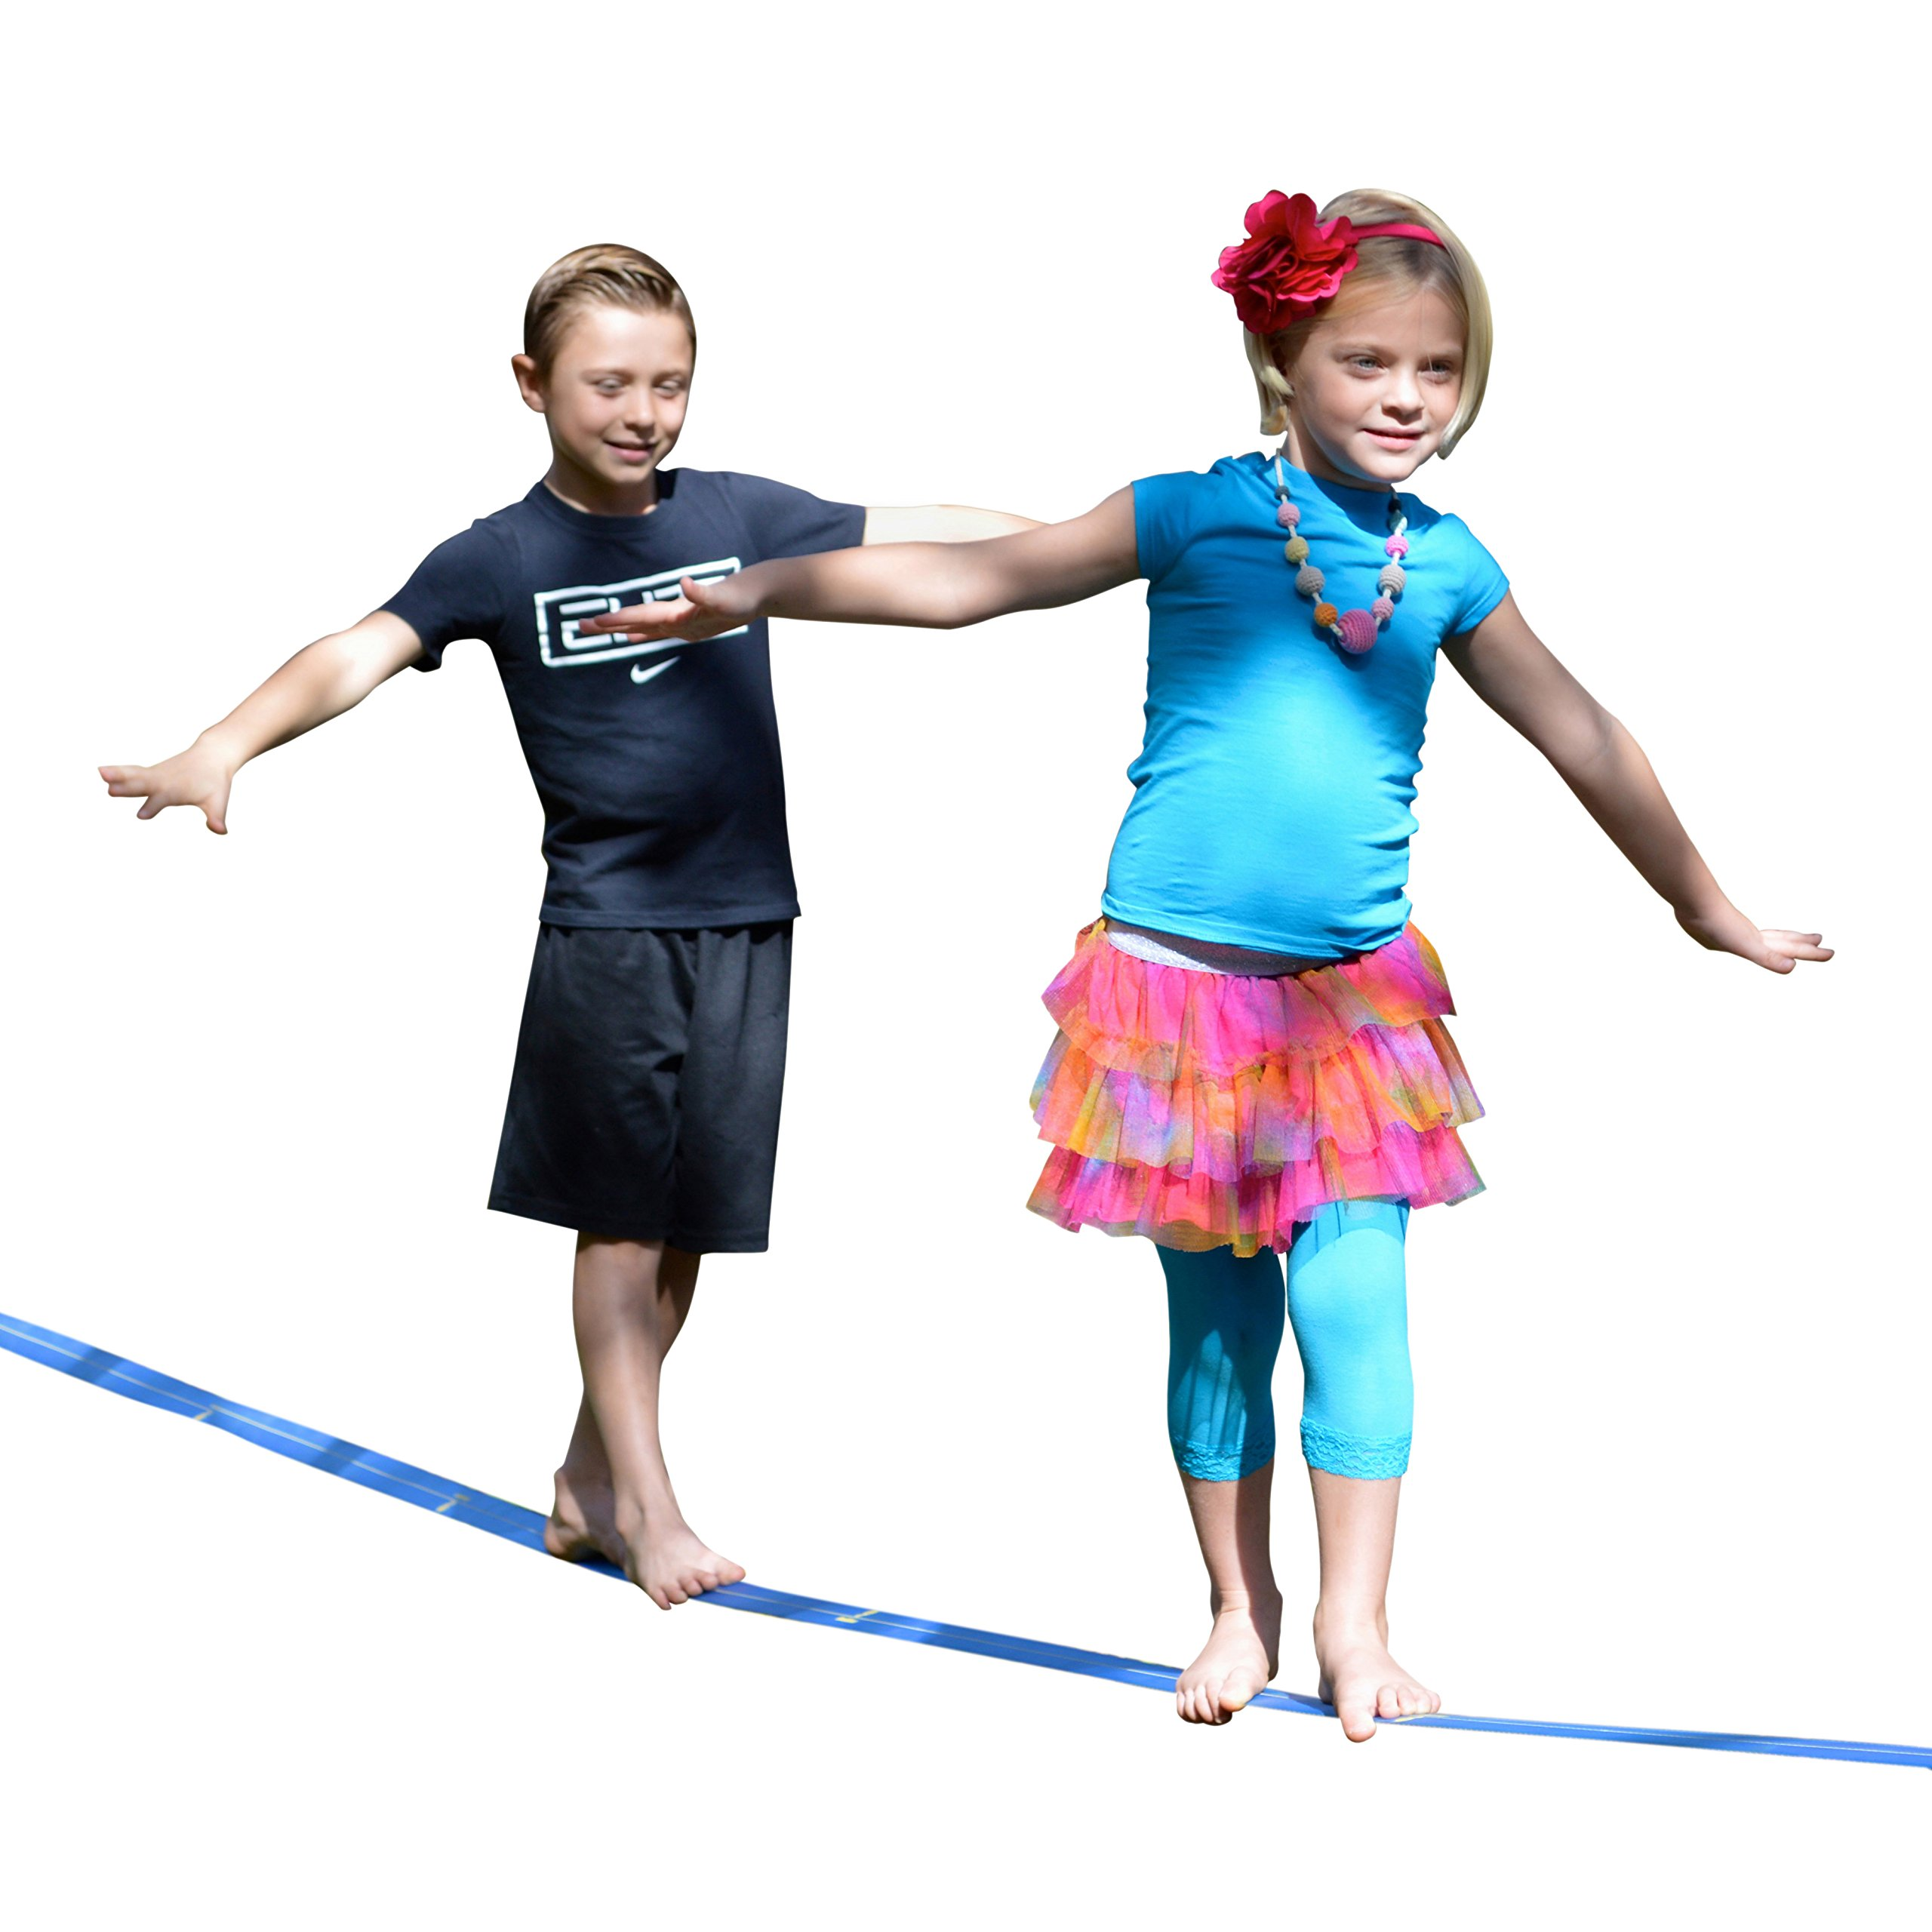 Beginner Slackline by Goodtimes - 48' Long and 2'' Wide Extra Soft Nylon Webbing W/ Durable Safety Ratchet + Easy Slacklines Set Up Guide. The Best Slacklining Gift Kit. Great for Kids Adults Teens